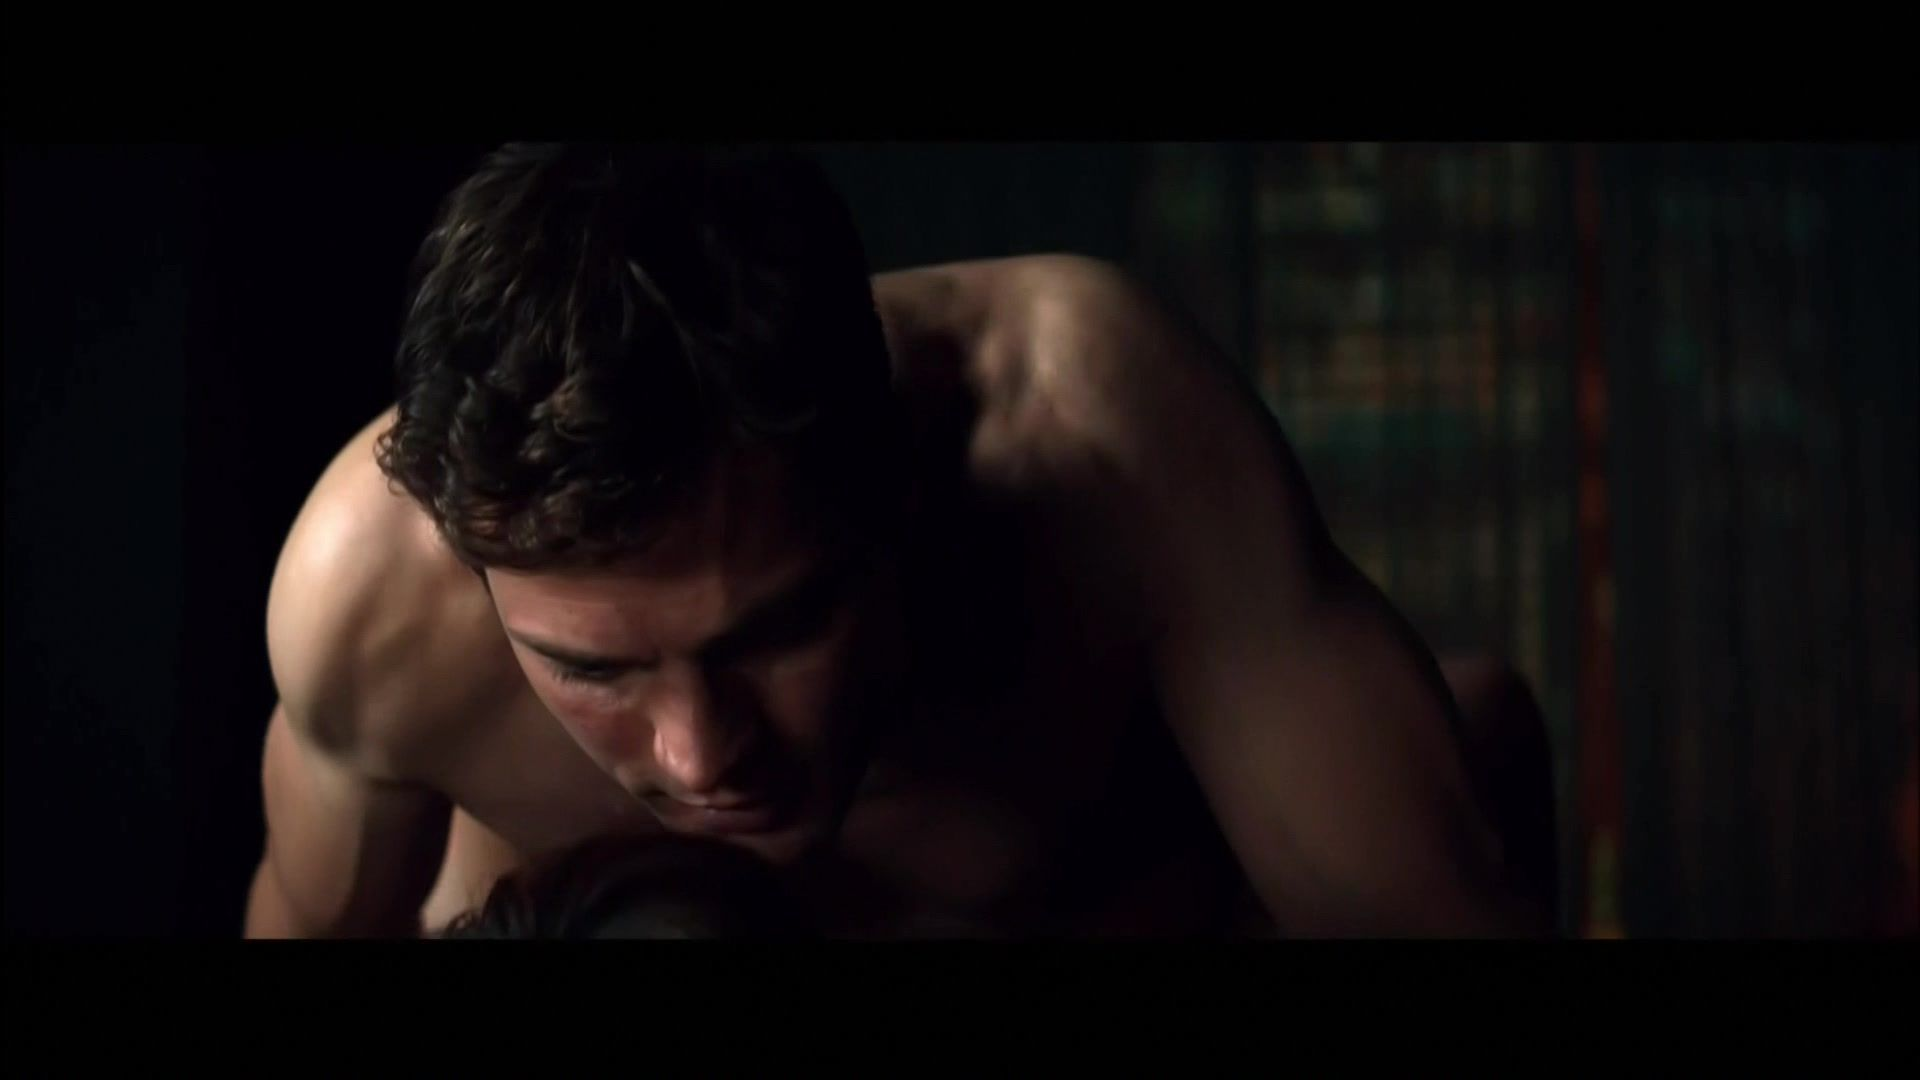 fifty shades of grey jamie dornan working it 2015